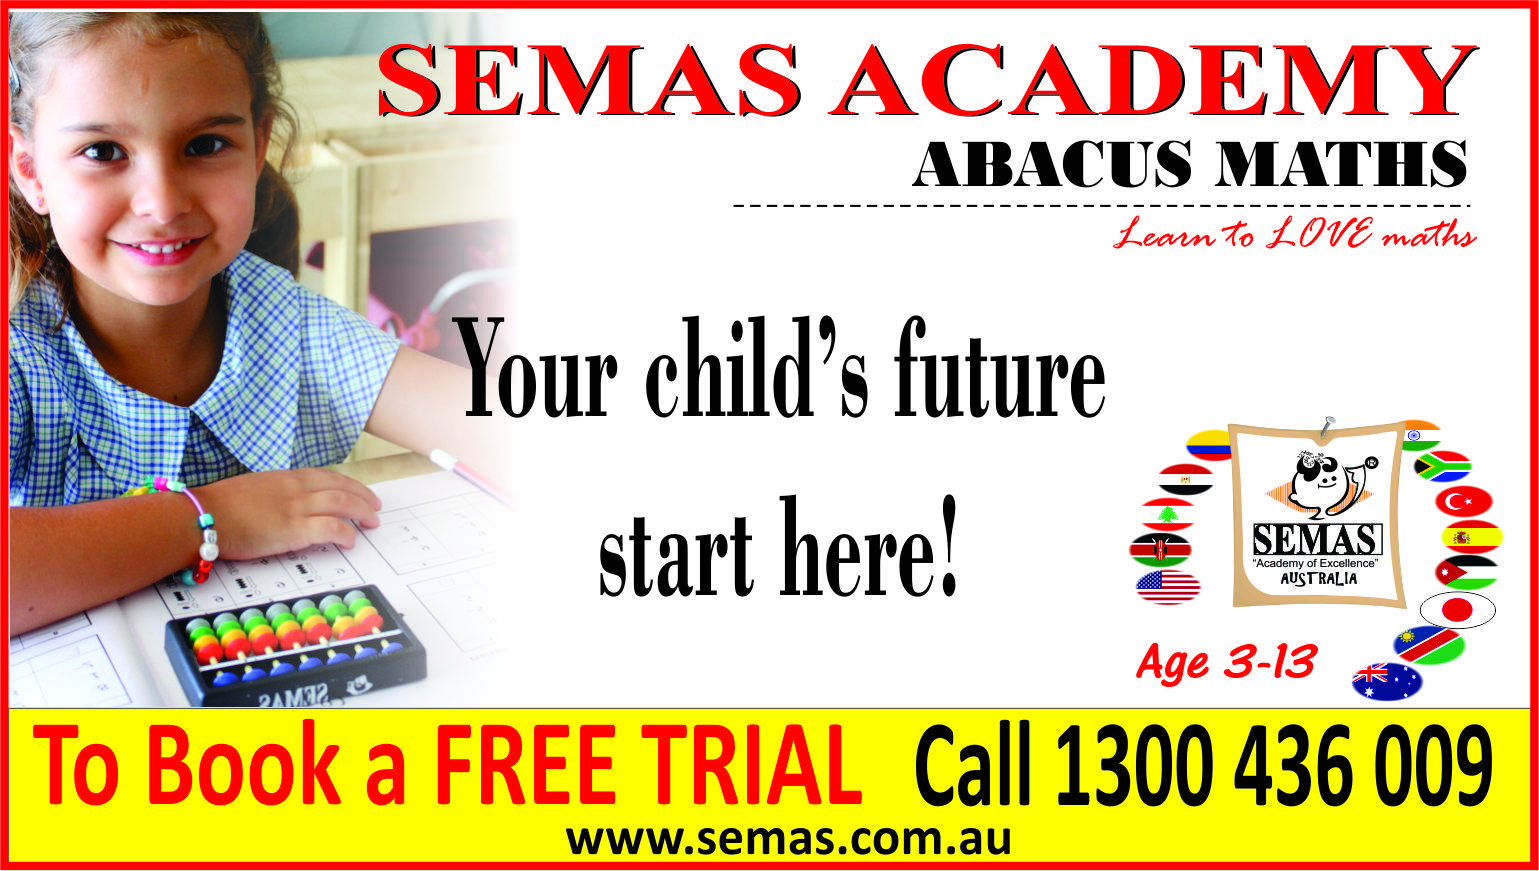 ABACUS MATHS program for 3-4 year olds, preschoolers (free trial)